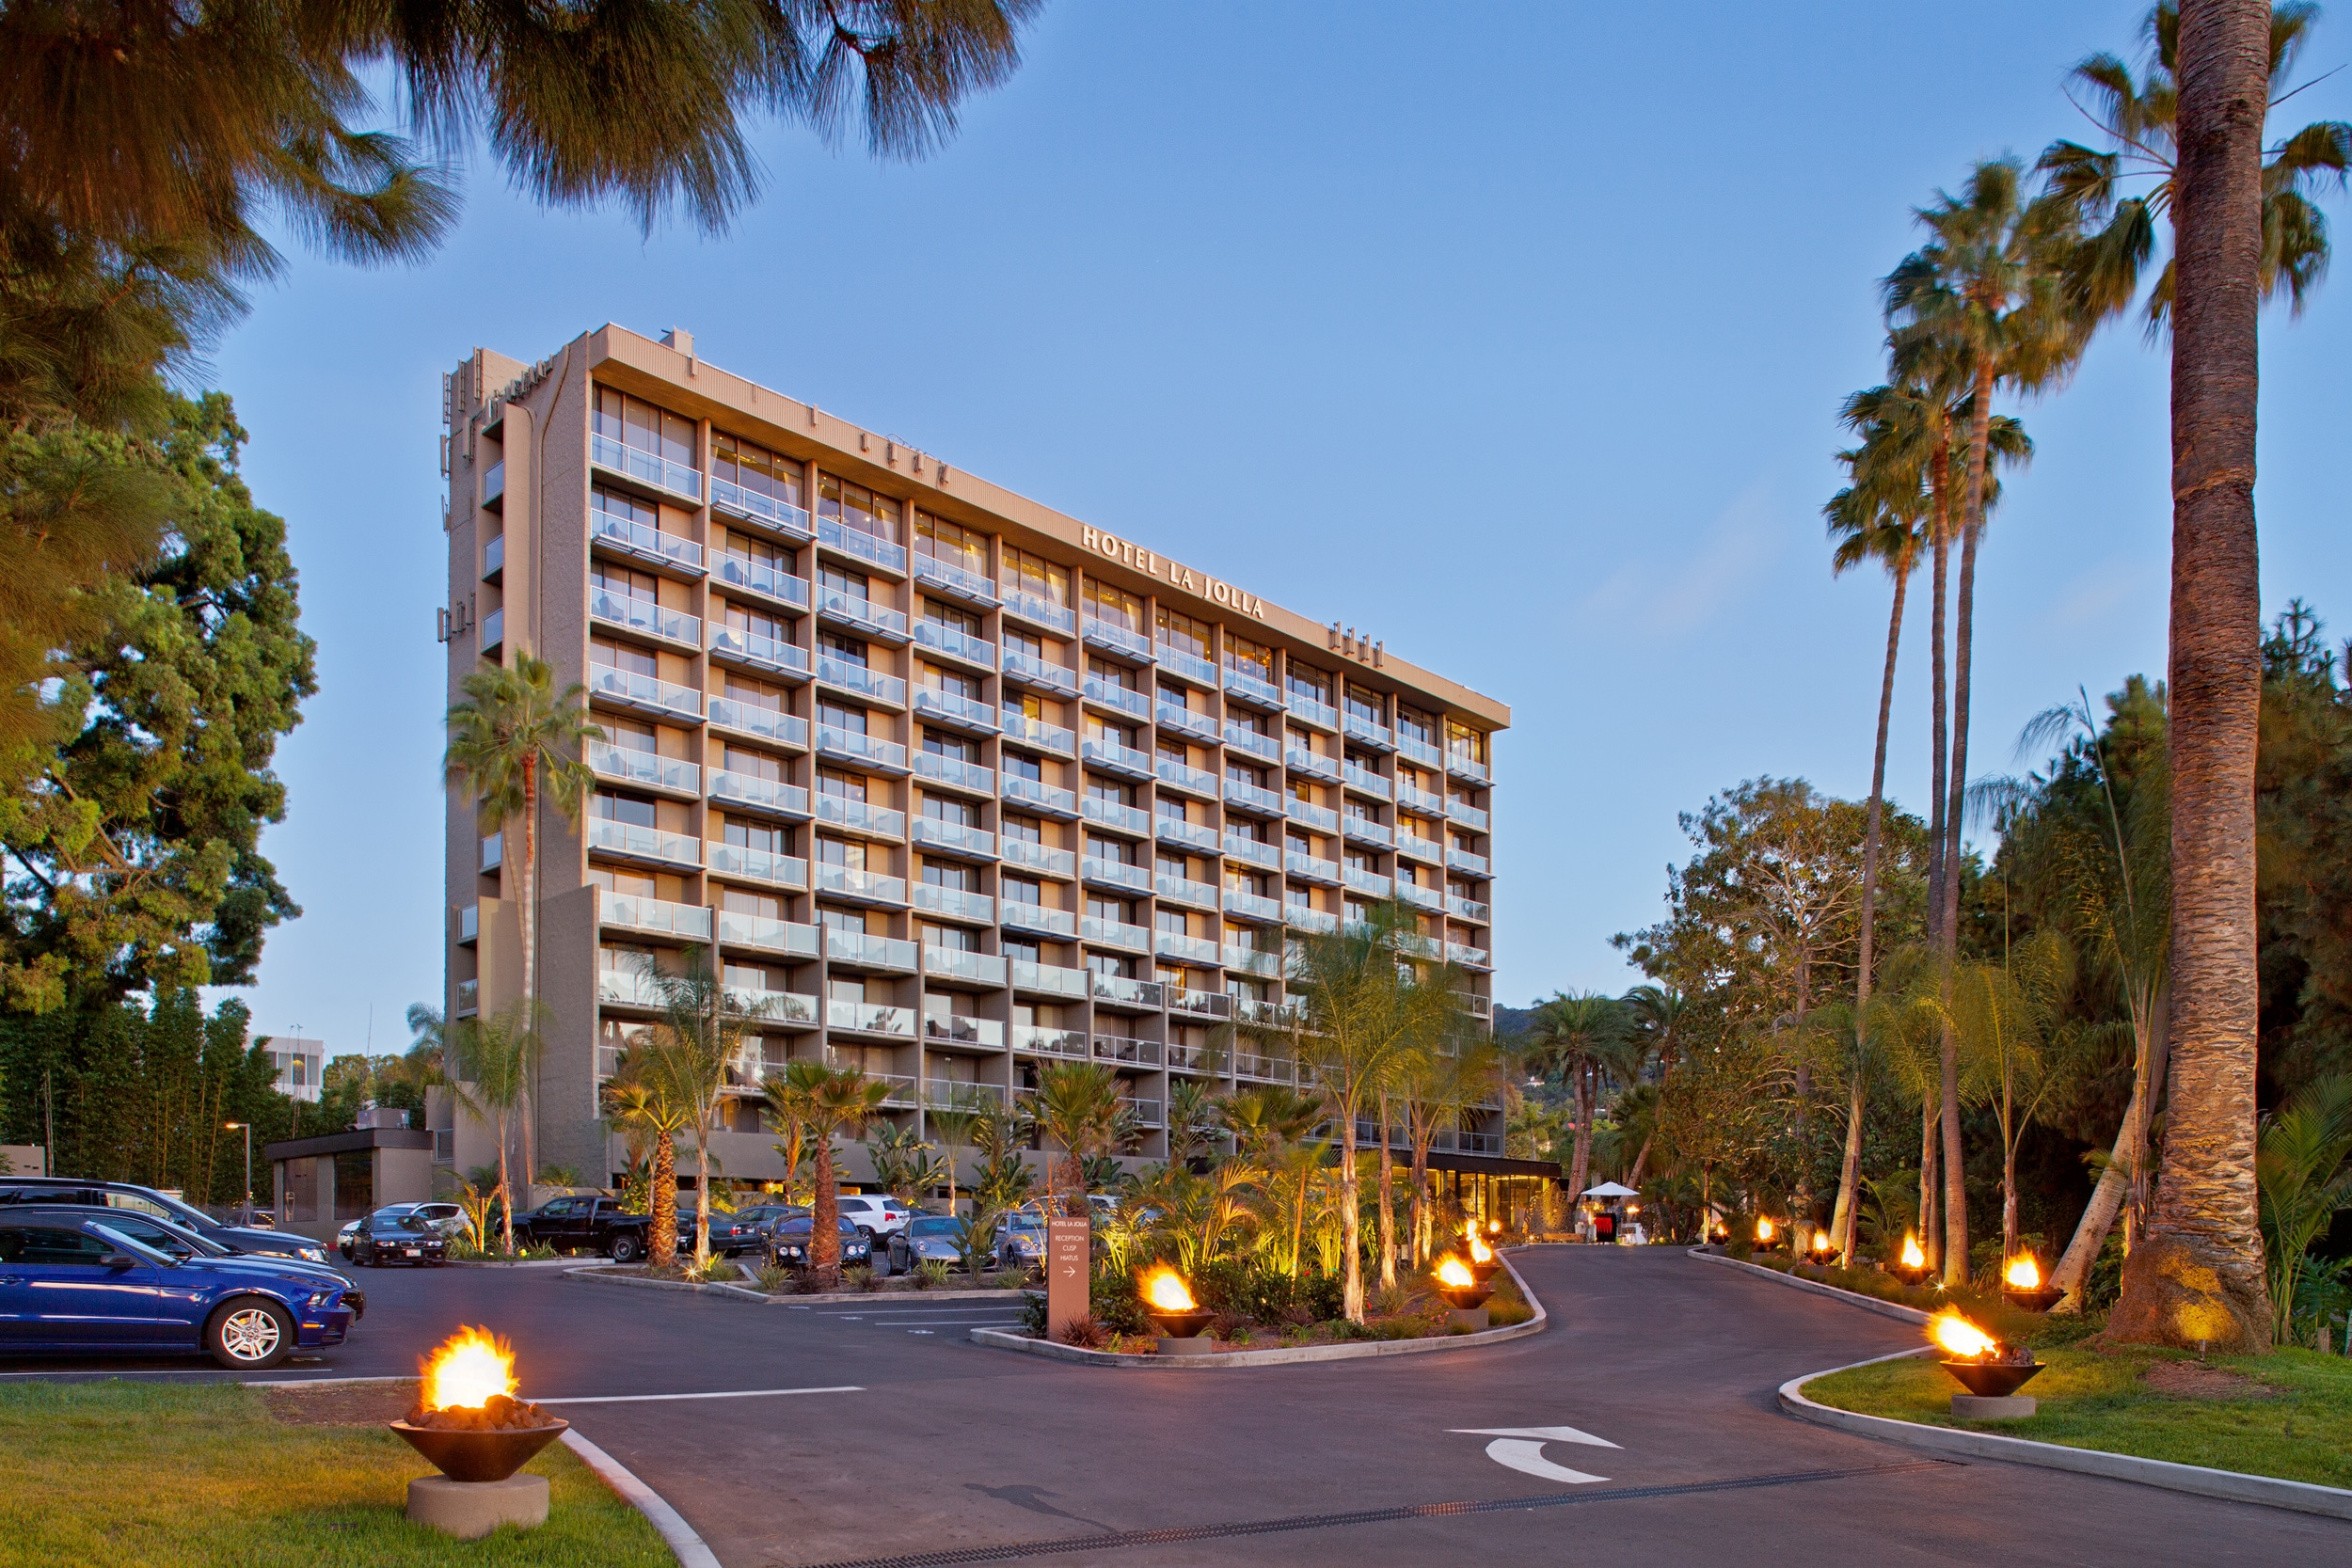 Hotel La Jolla location